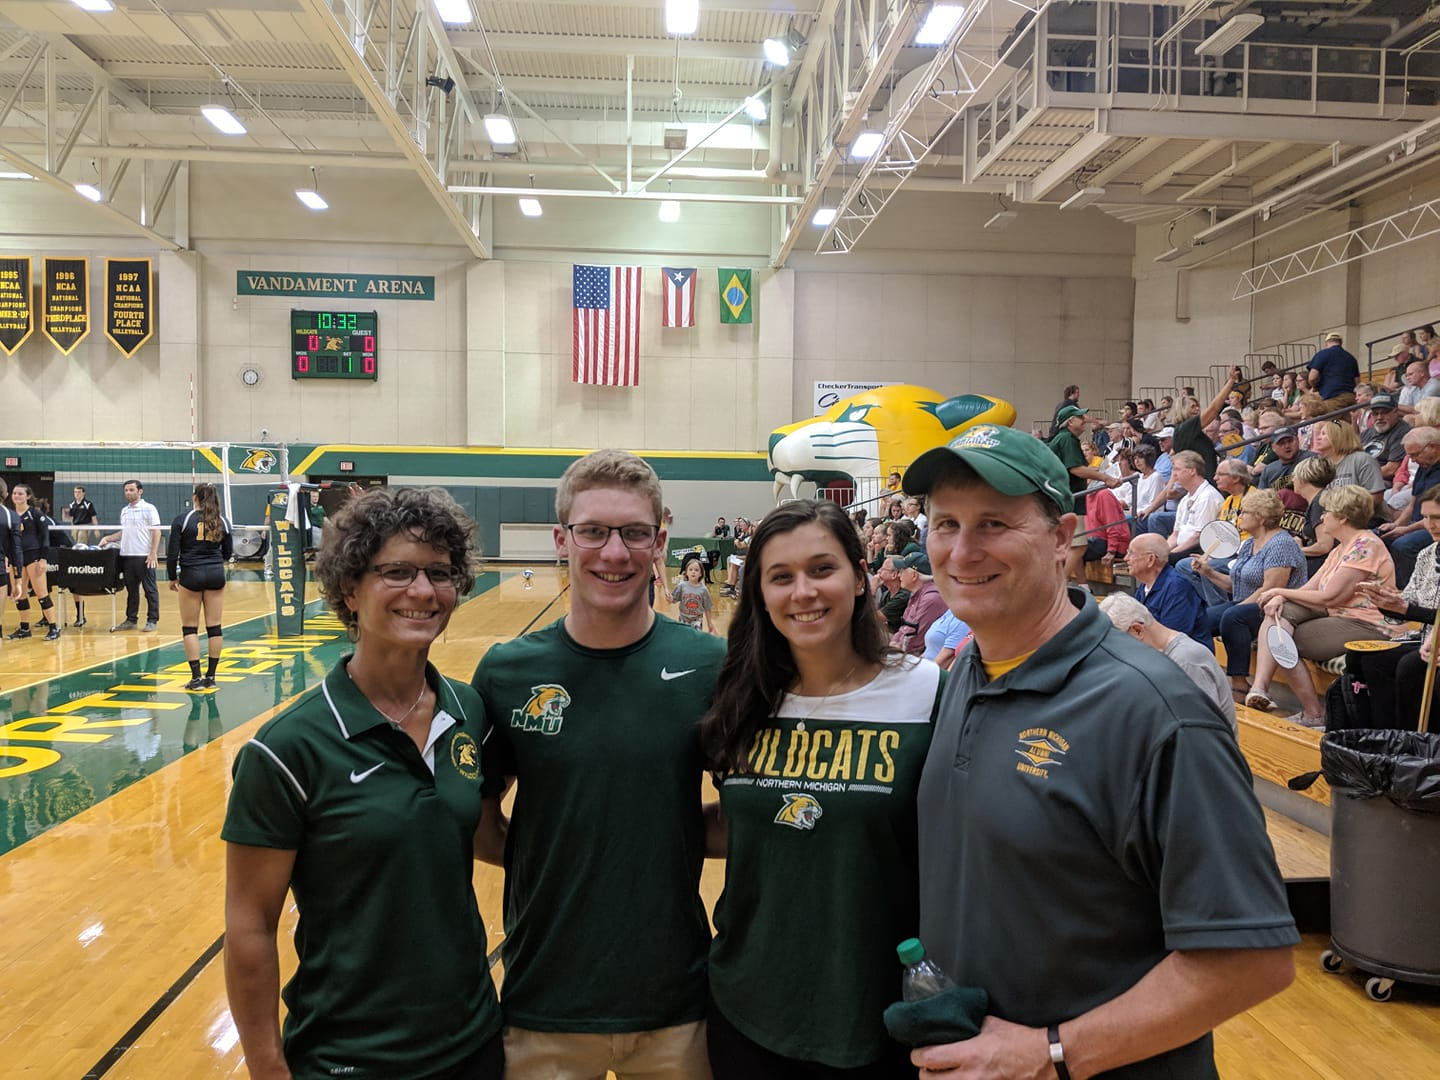 family in wildcat gear at volleyball game